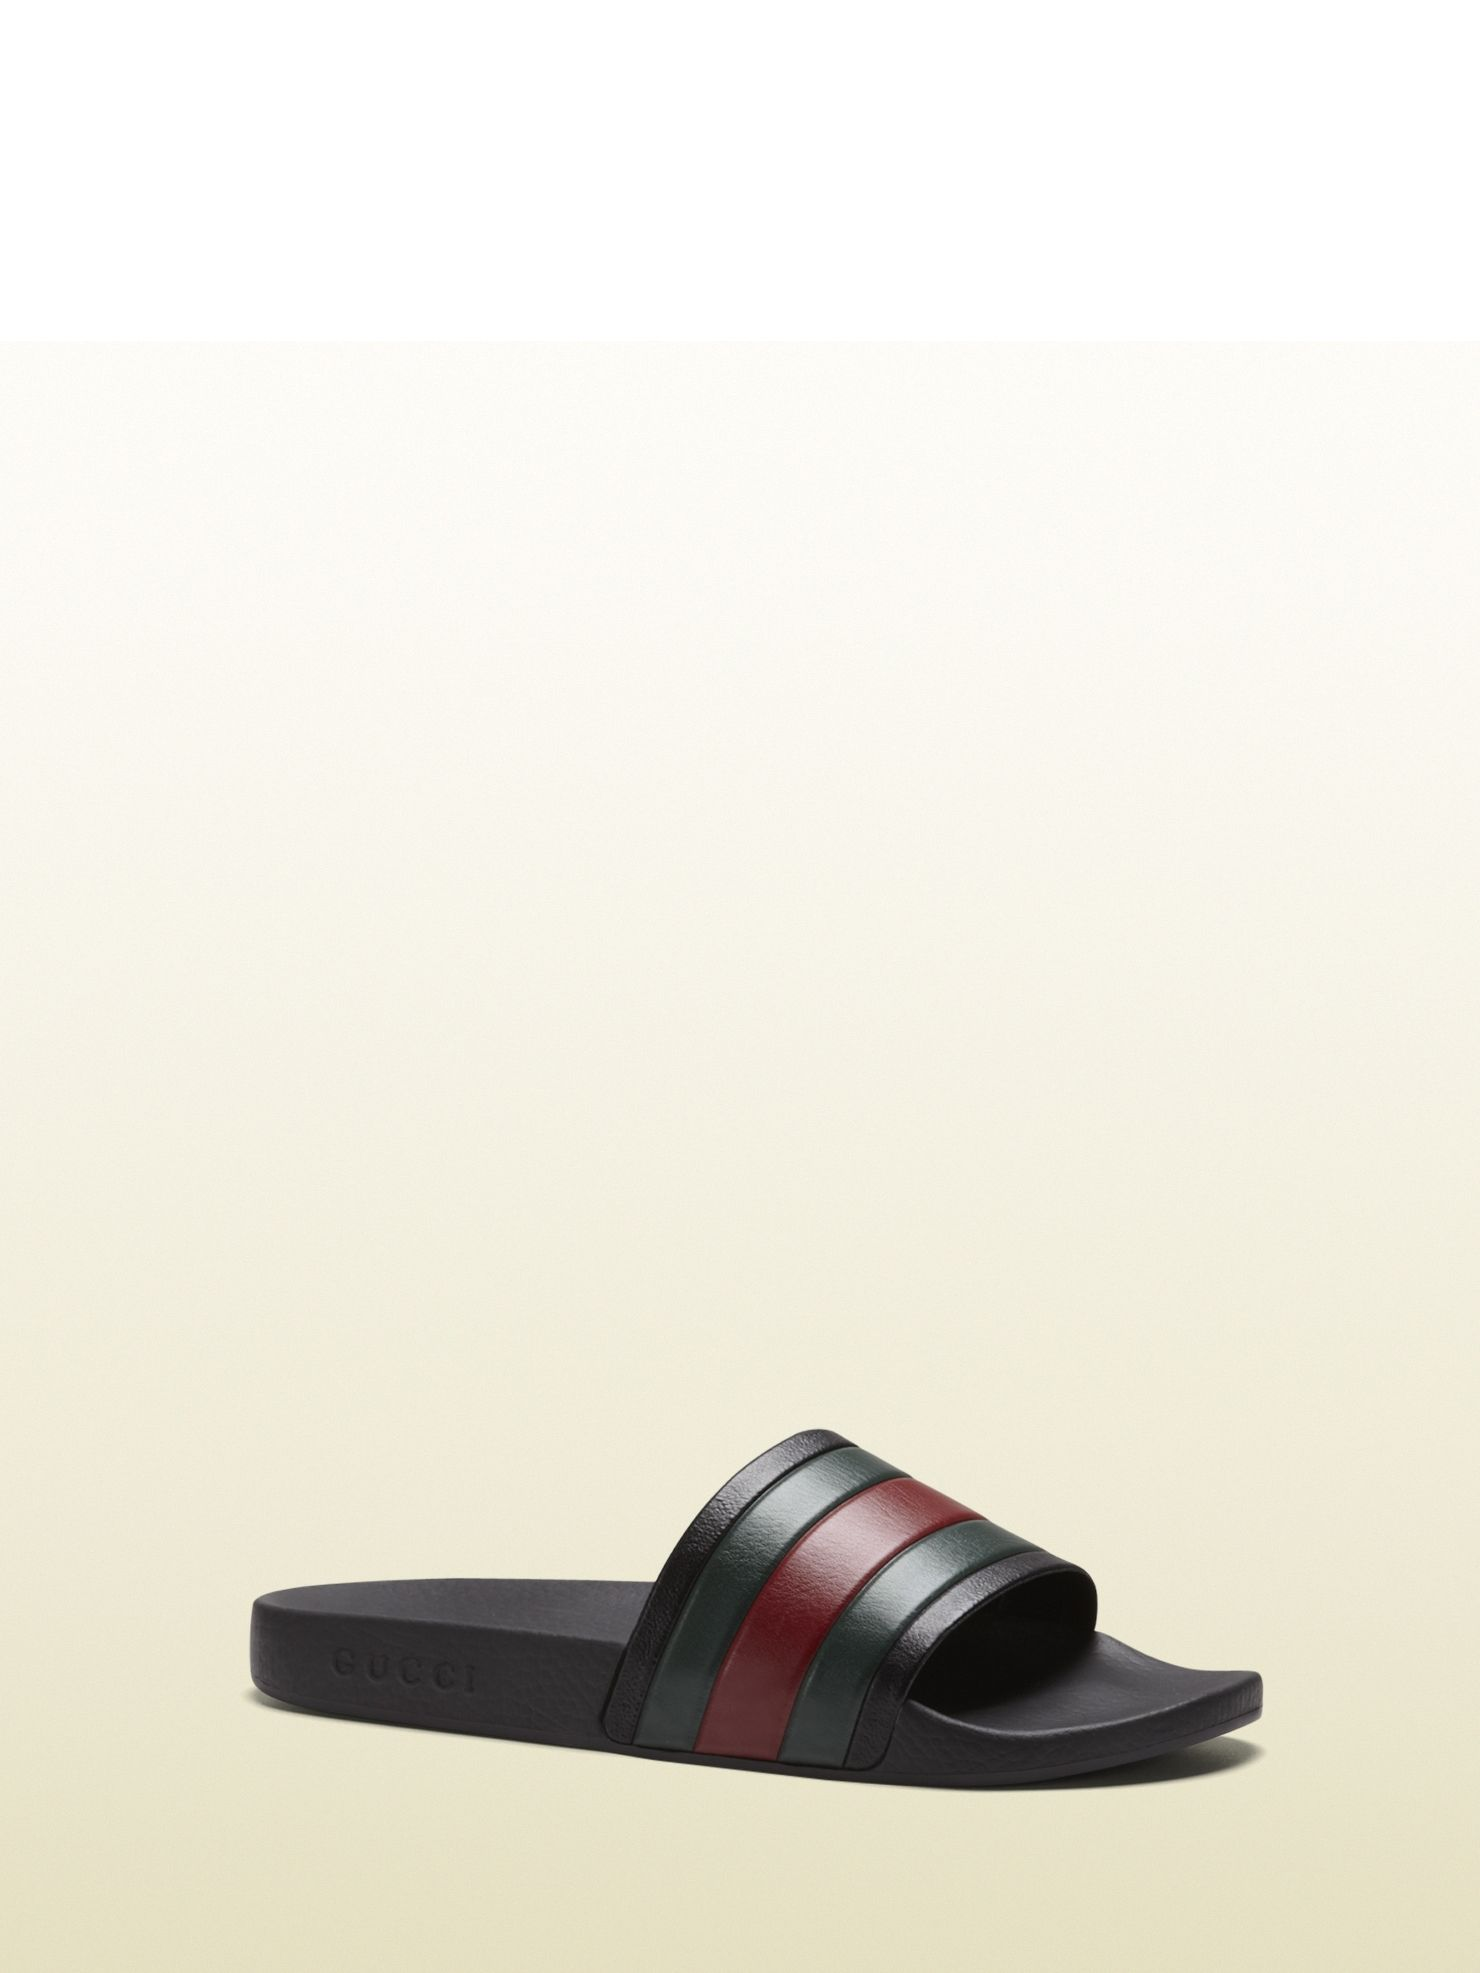 3872430eeb8b Gucci - 308234 GIB10 1098 - black rubber slide sandal - black rubber sole  with signature web rubber strap  Made in Italy gucci logo embossed on the  sole